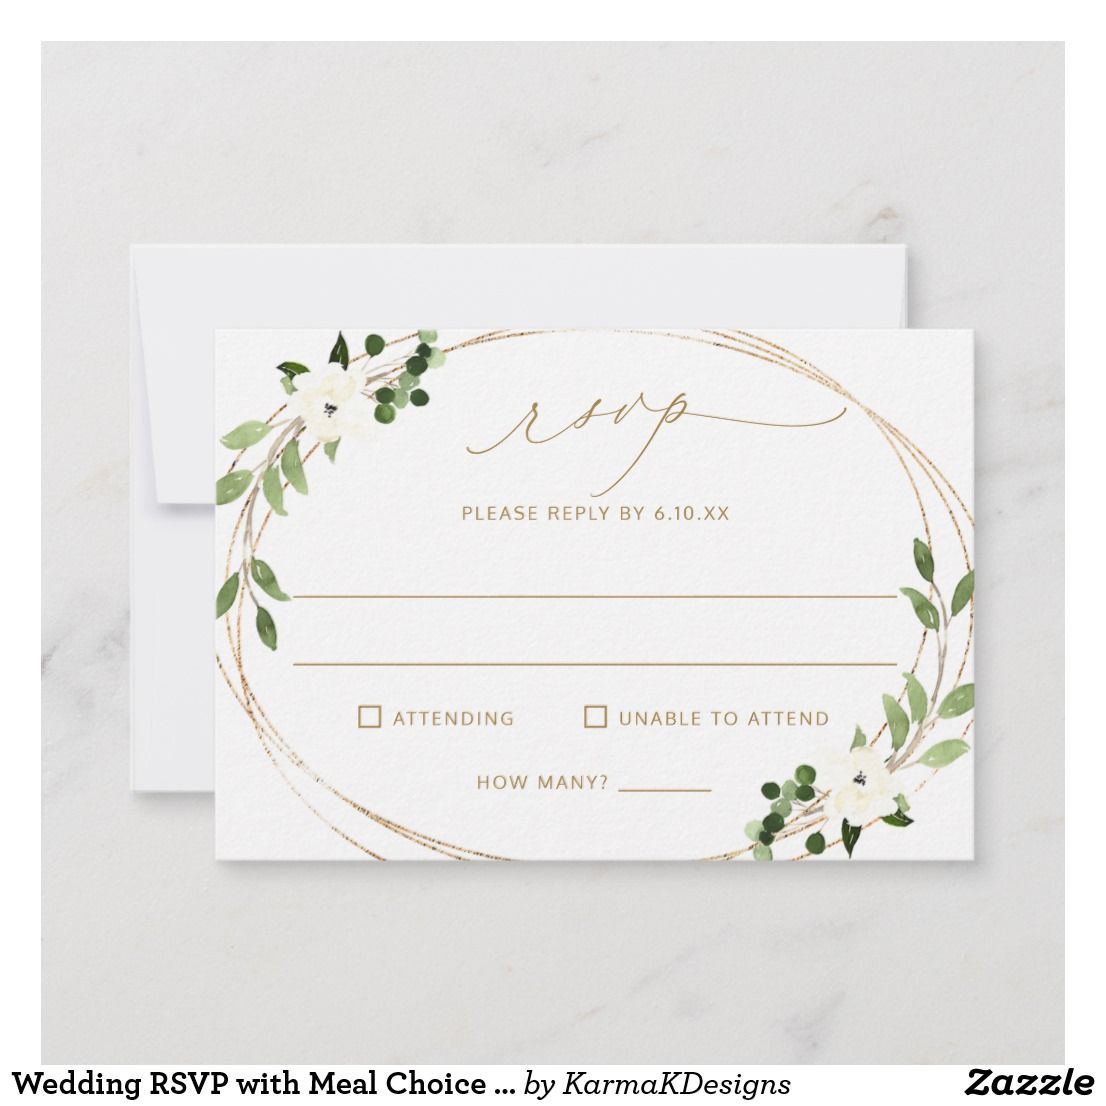 Wedding Rsvp With Meal Choice Favorite Song Back Zazzle Com Wedding Rsvp Rsvp Wedding Cards Wedding Reception Cards